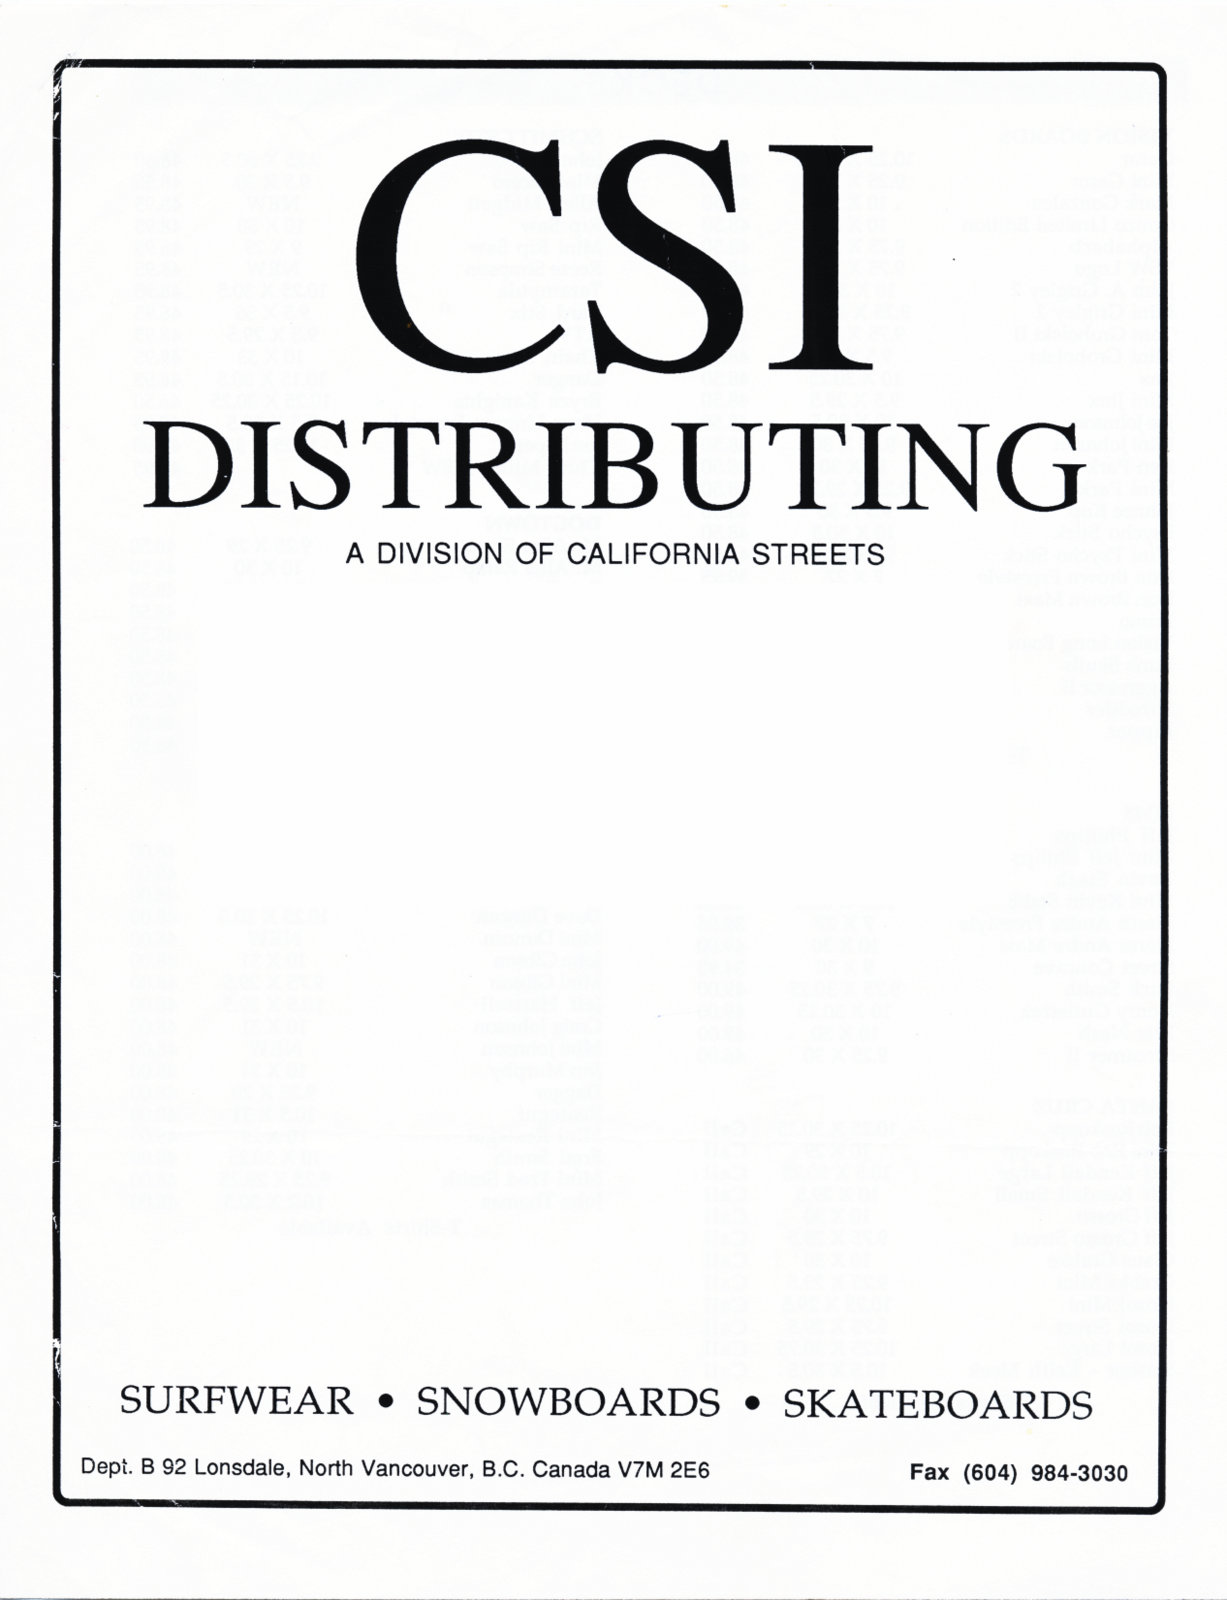 CSI-Cal-Streets-Industries-Catalog-without-sticker.jpg